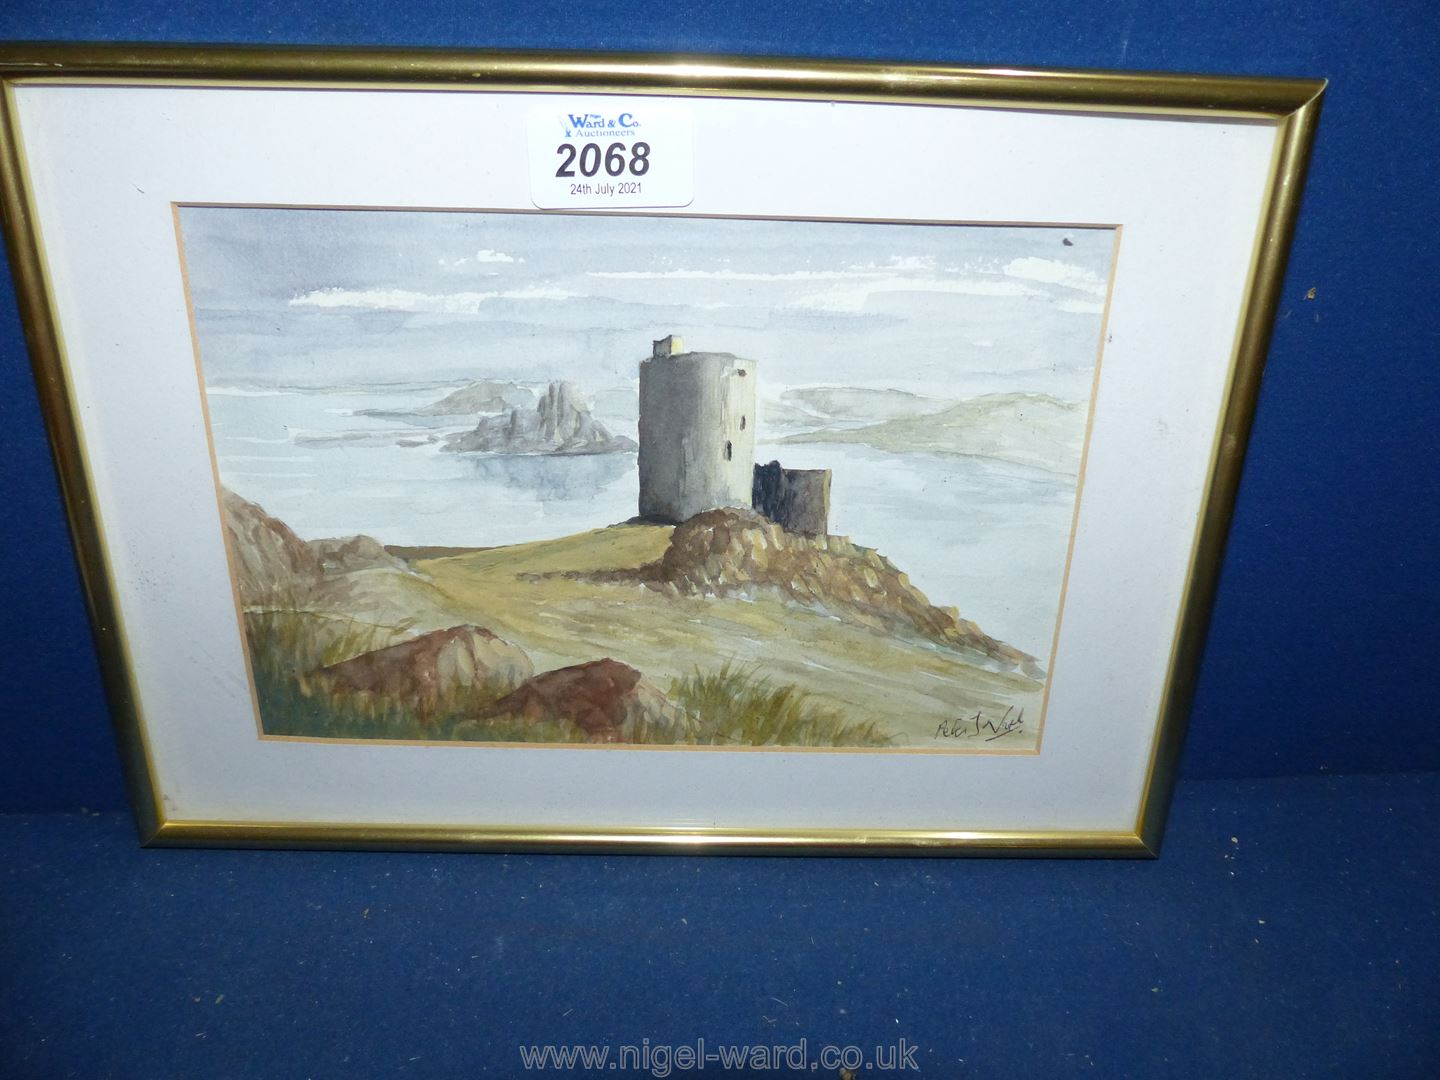 A framed and glazed watercolour of Cromwell's Castle, Isles of Scilly, signed lower right Peter J.